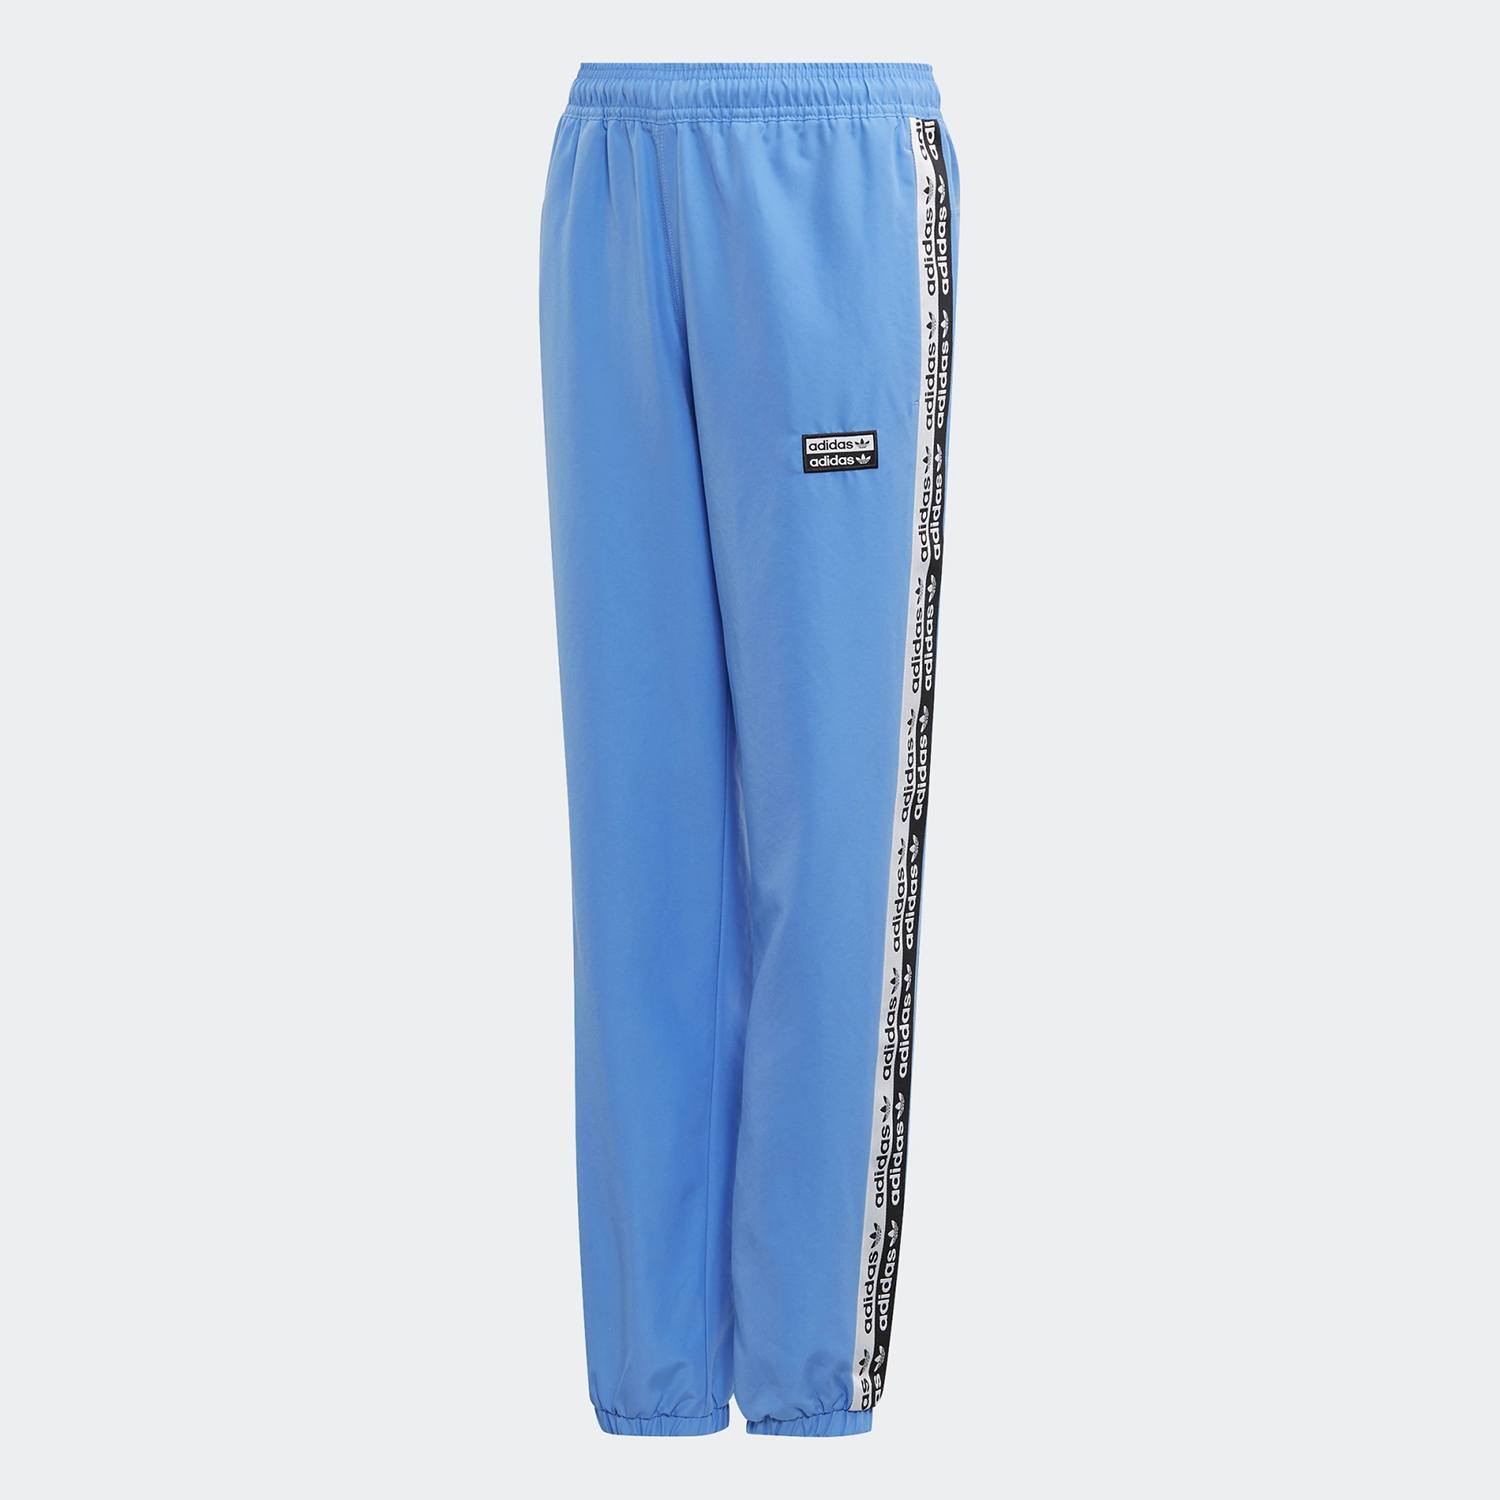 factory authentic check out low price sale adidas Originals Kids Vocal Trackpants REABLU ED7878